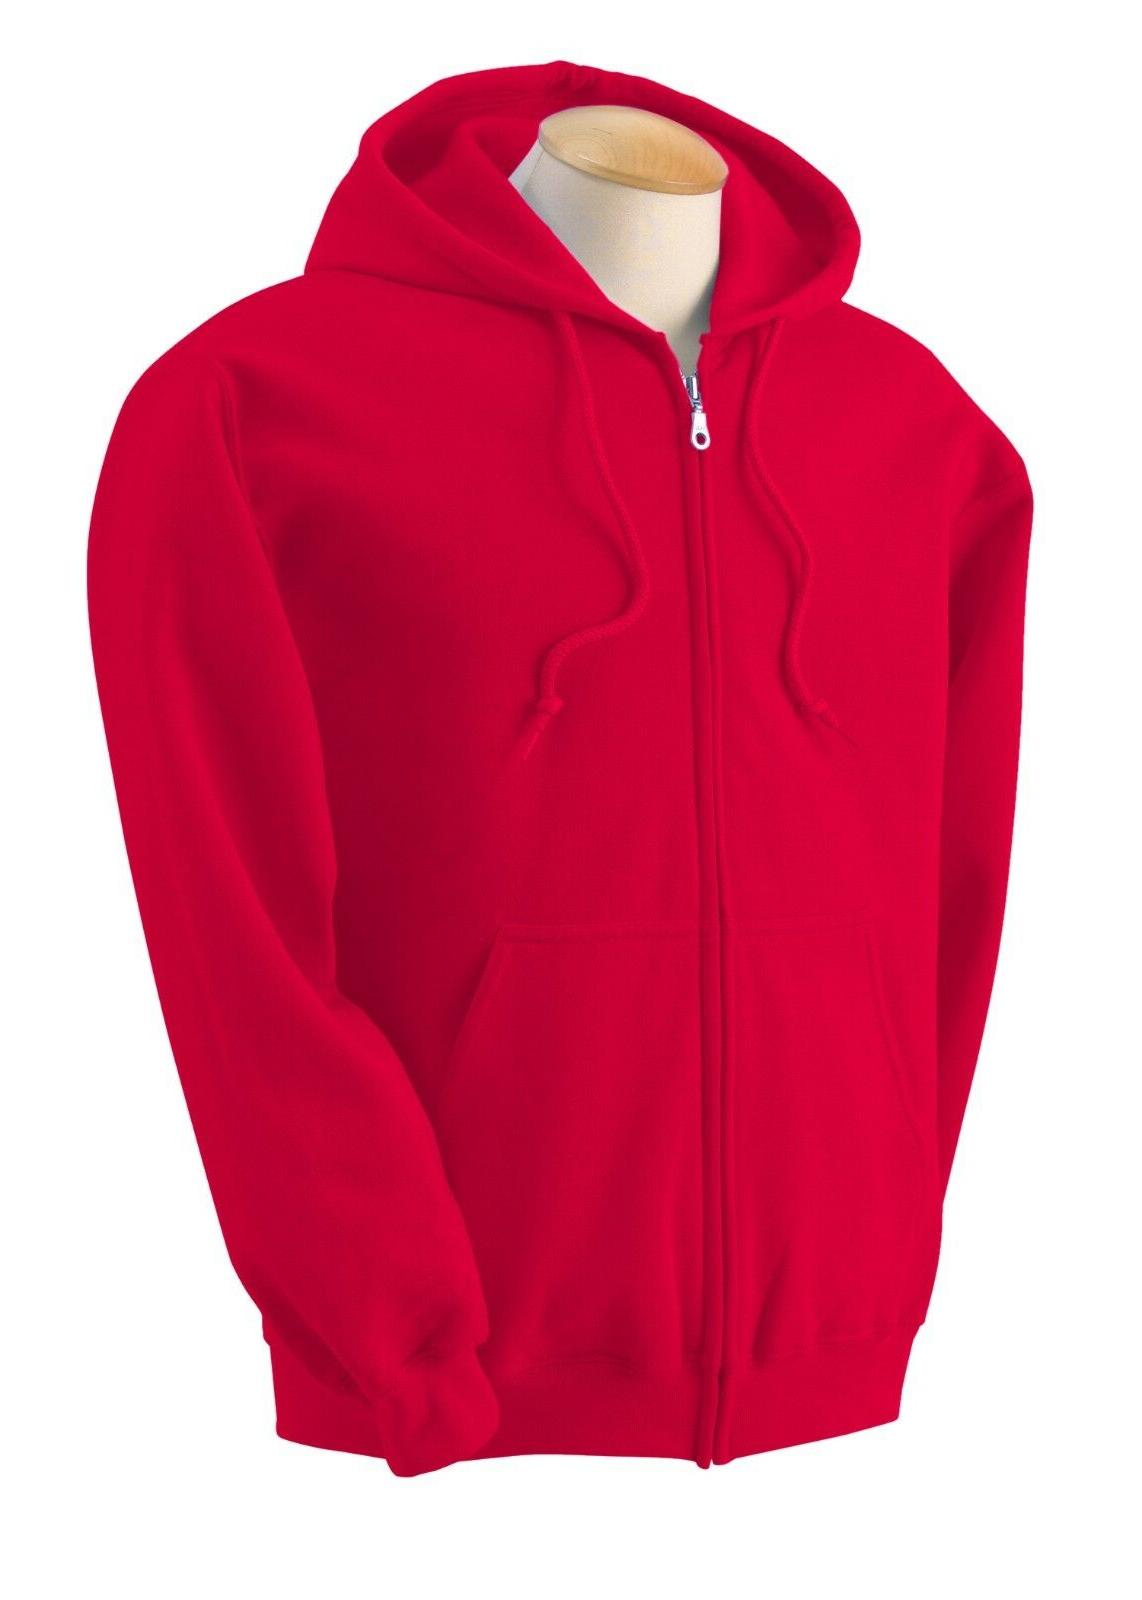 NEW Gildan Zipper Hoodie Men Ladies Unisex Red XL Hooded Zip